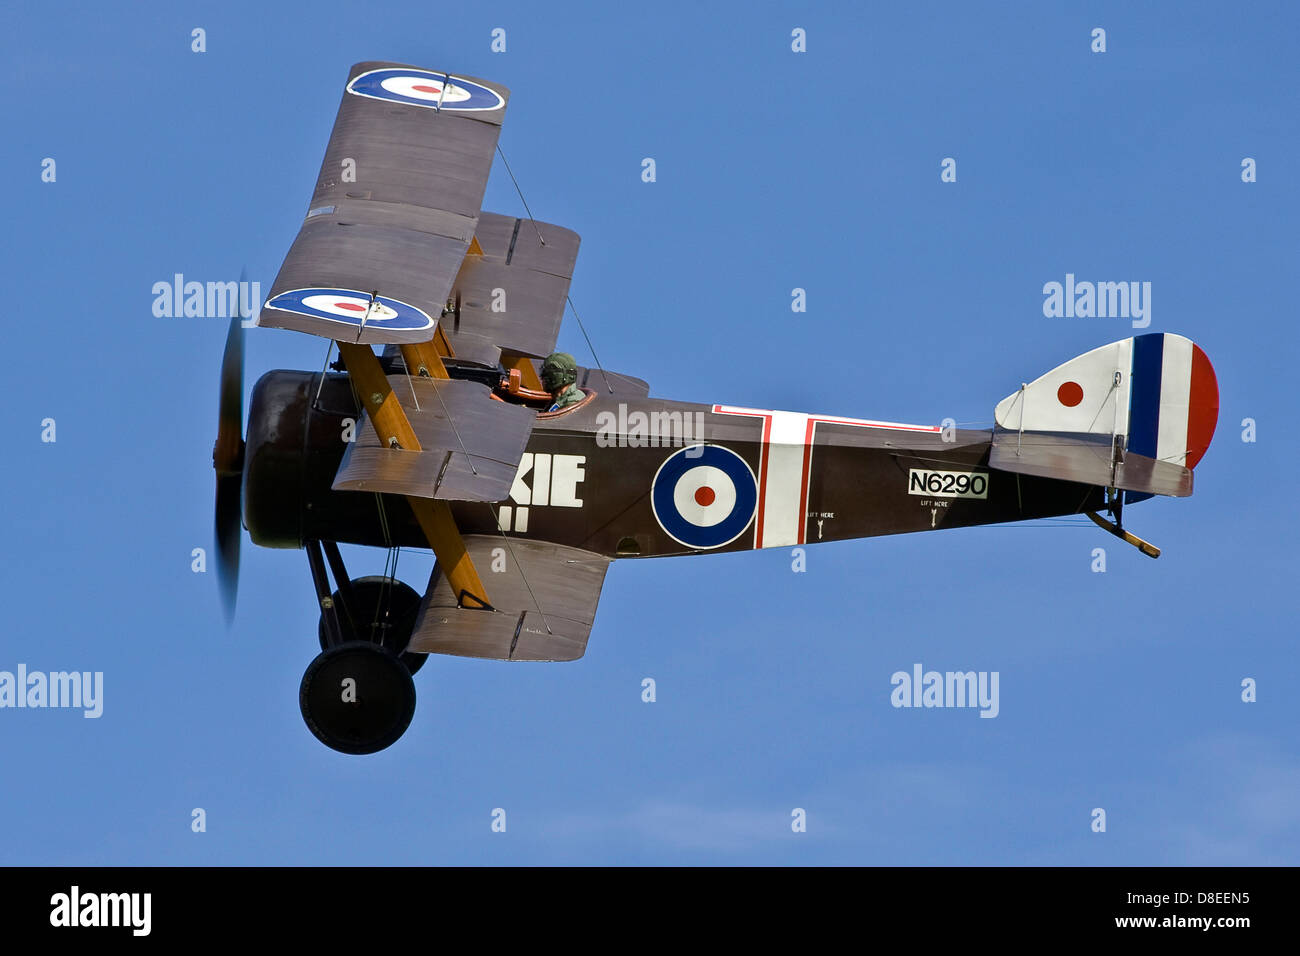 Sopwith Triplane G-BOCK N6290 First World War Vintage Replica Aeroplane Flypast at Old Warden Shuttleworth - Stock Image